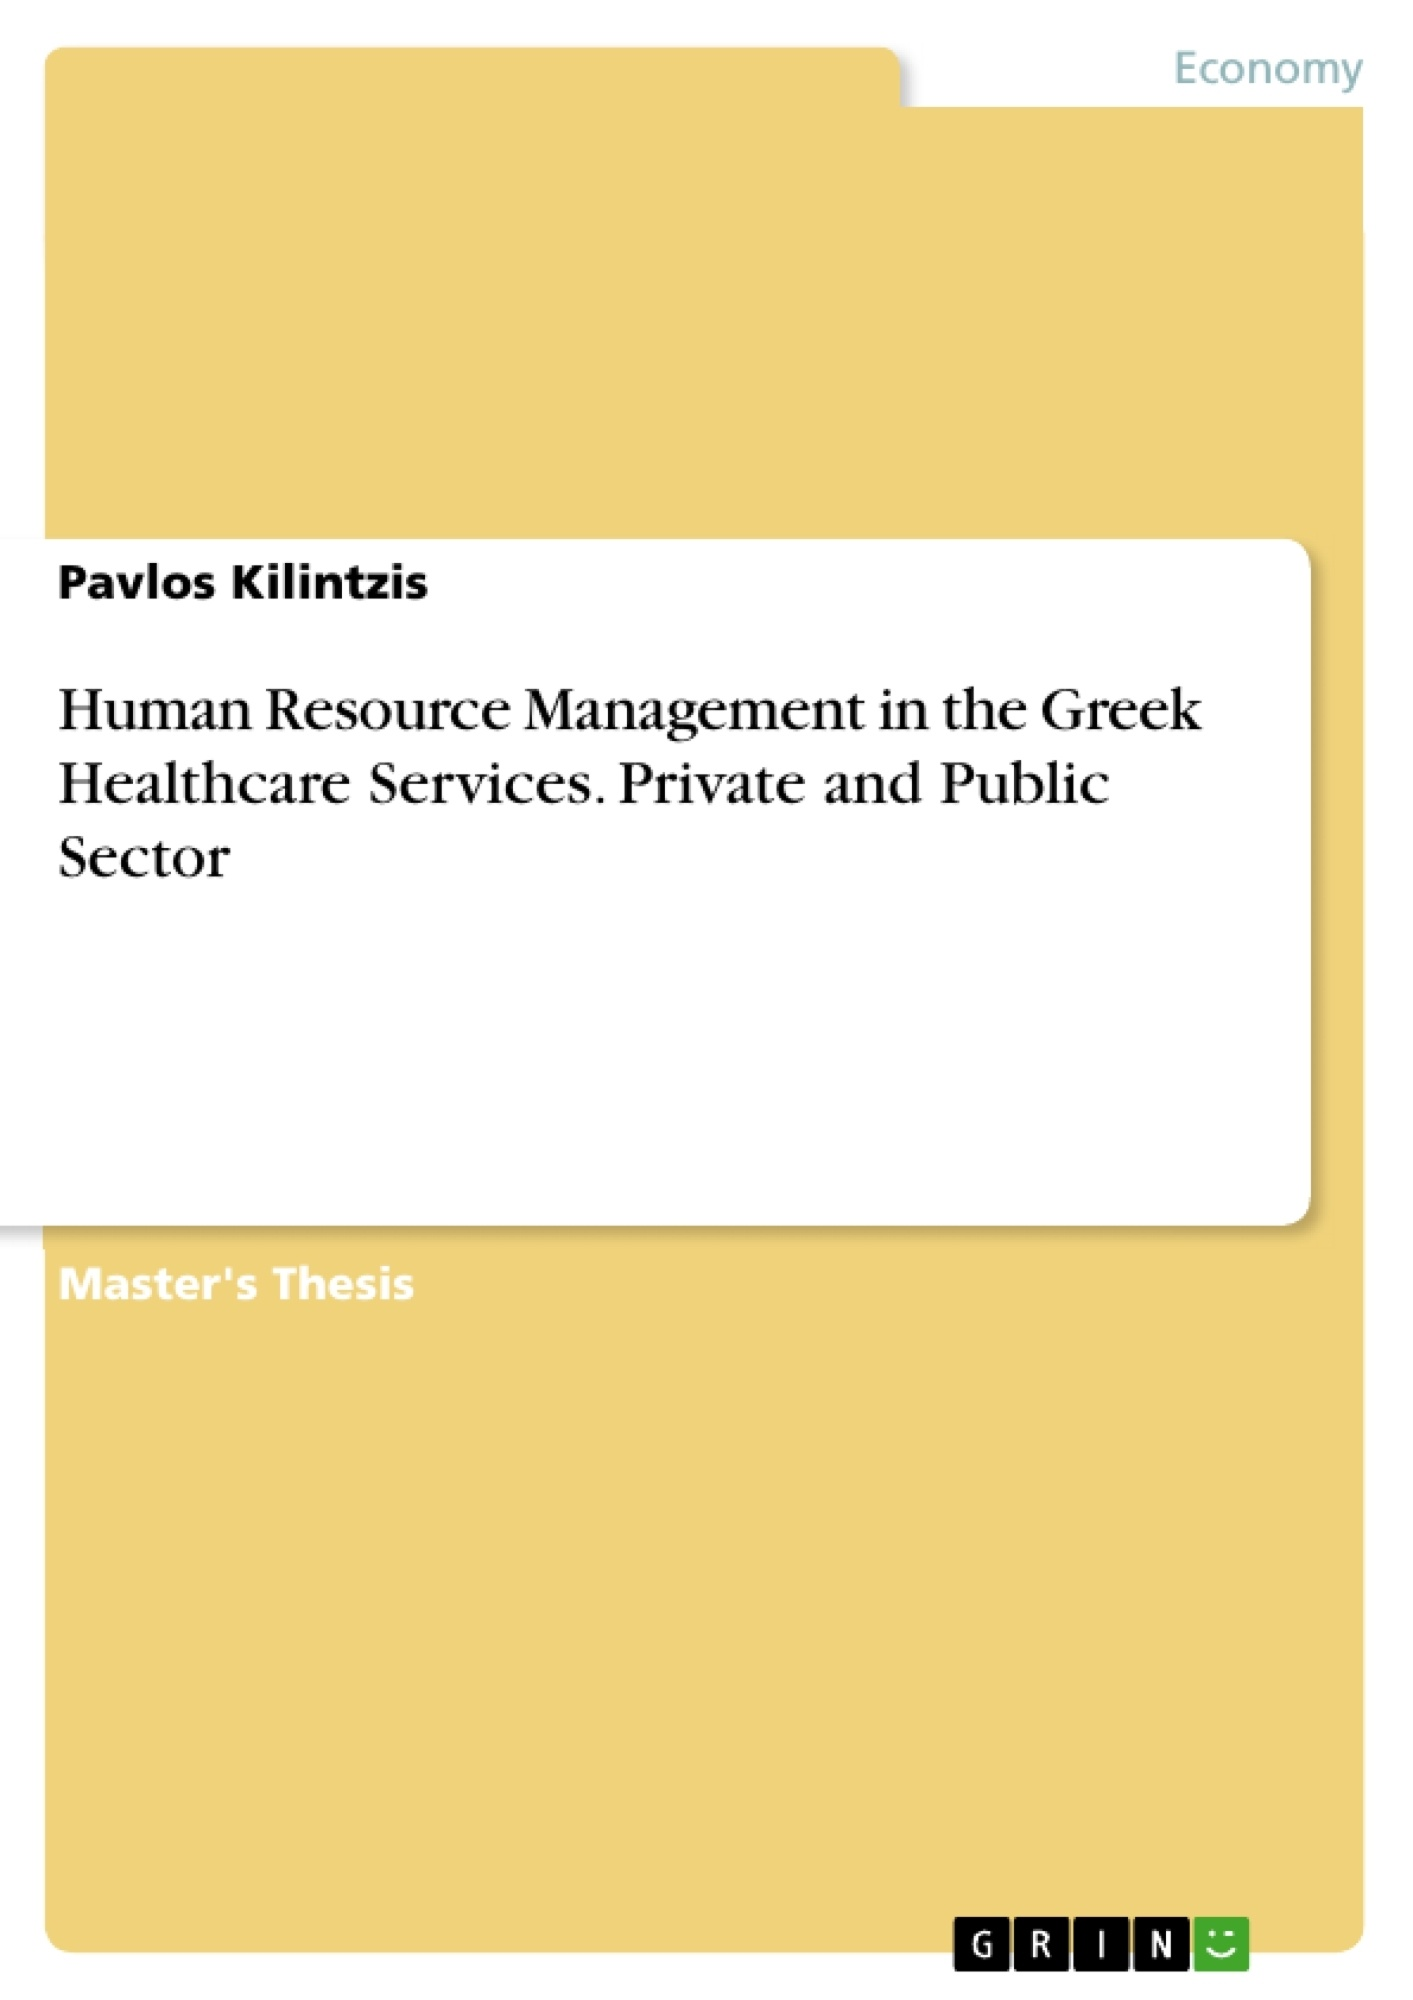 Title: Human Resource Management in the Greek Healthcare Services. Private and Public Sector